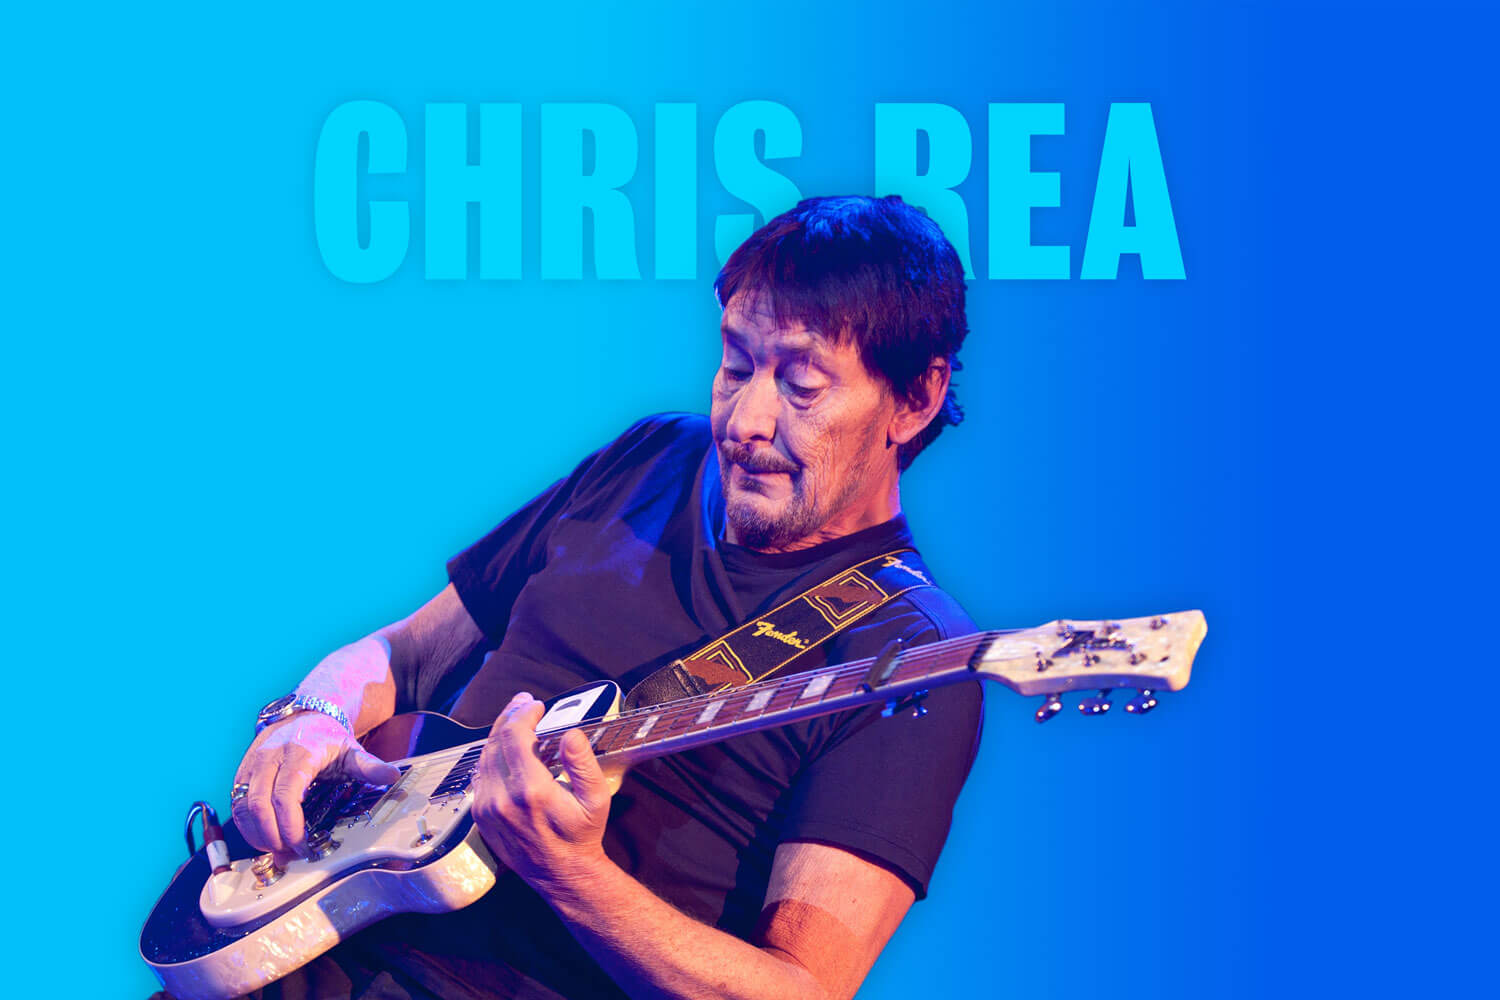 Browse Chris Rea products